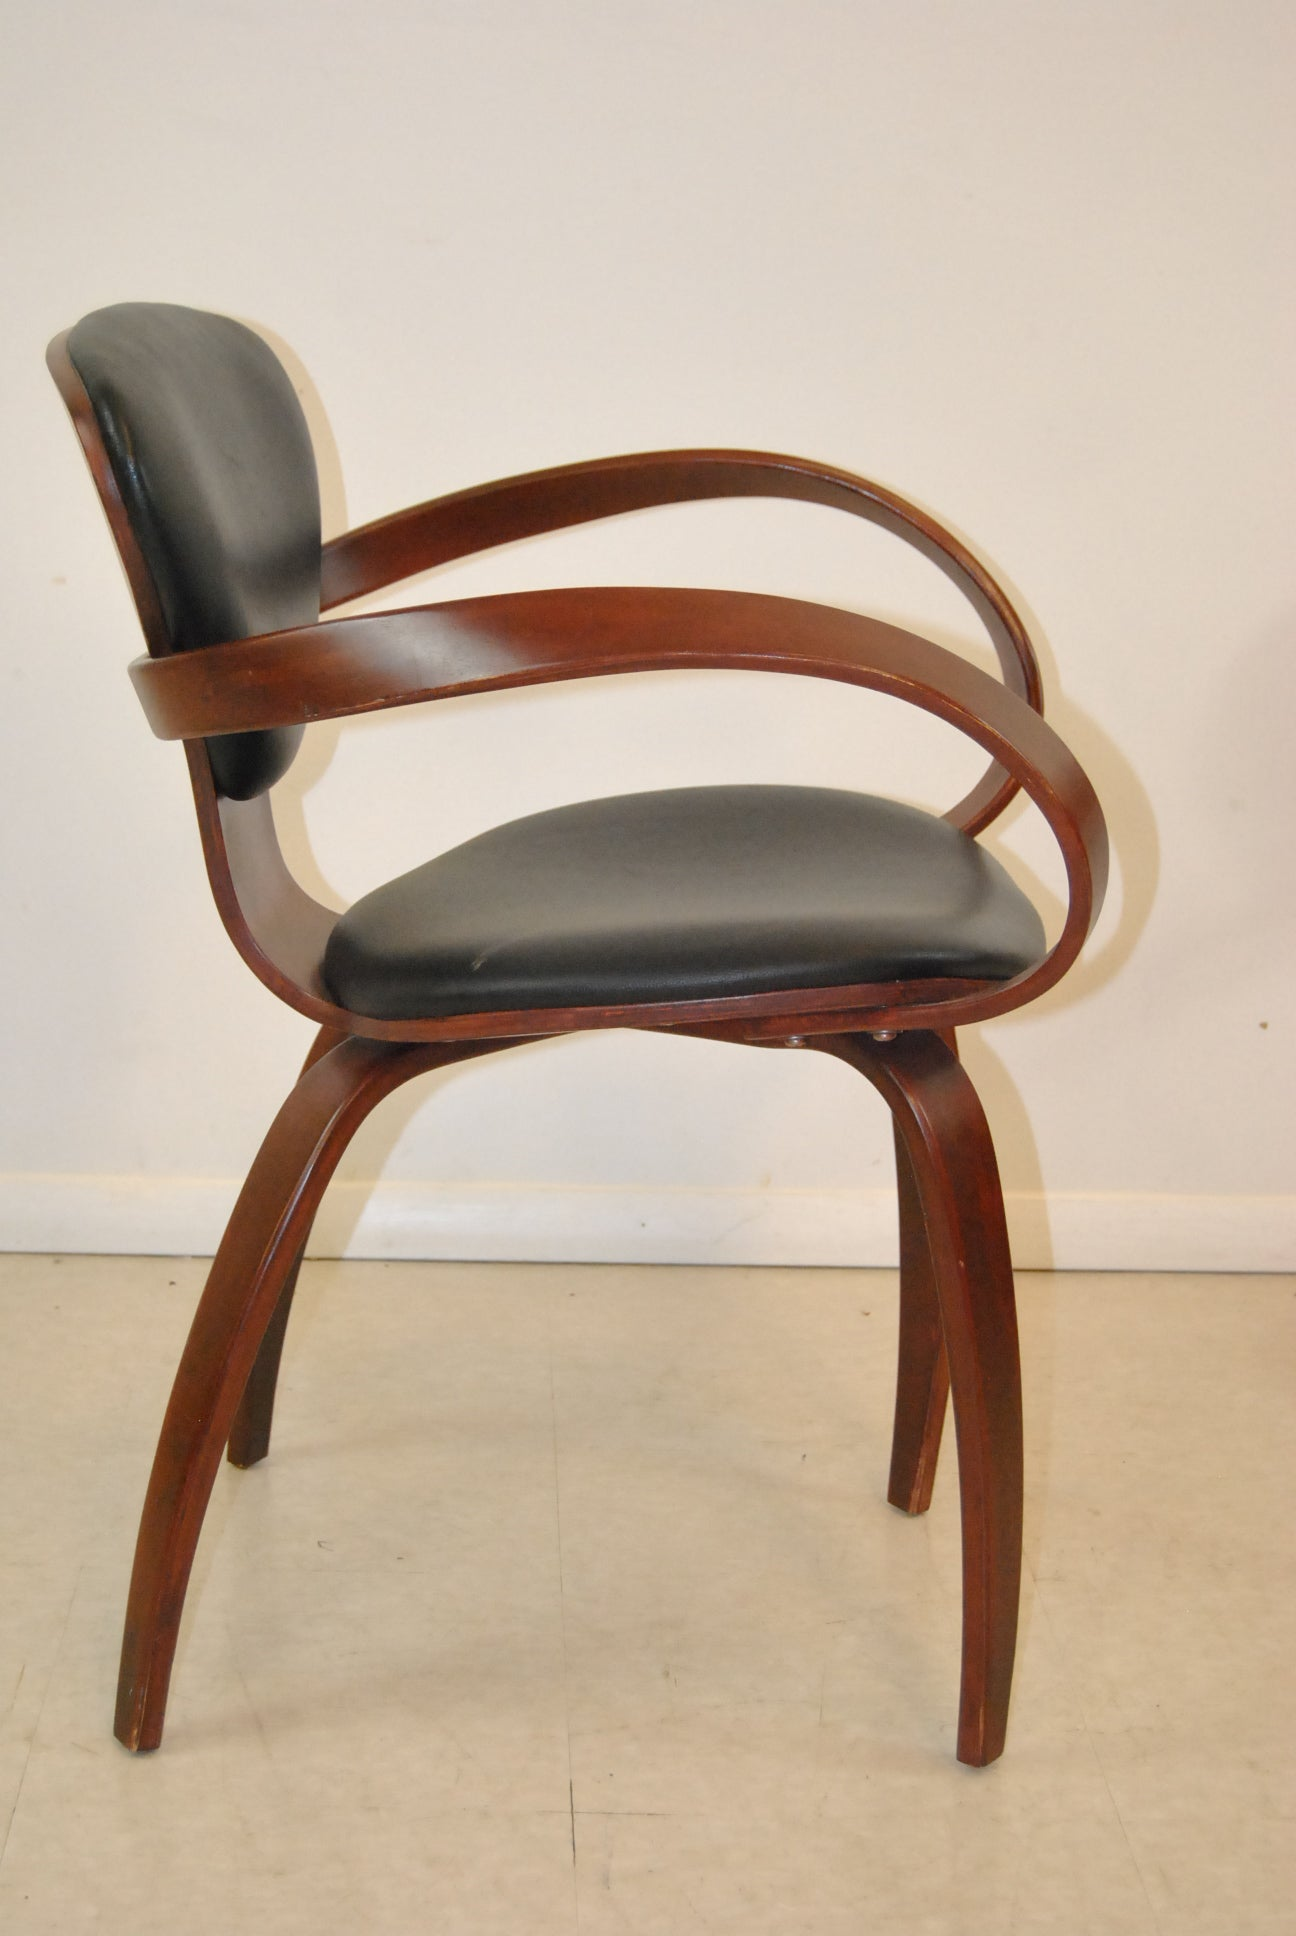 Strong Packing Antiques Vintage Levenger Goldman Mid Century Chair Very Nice!